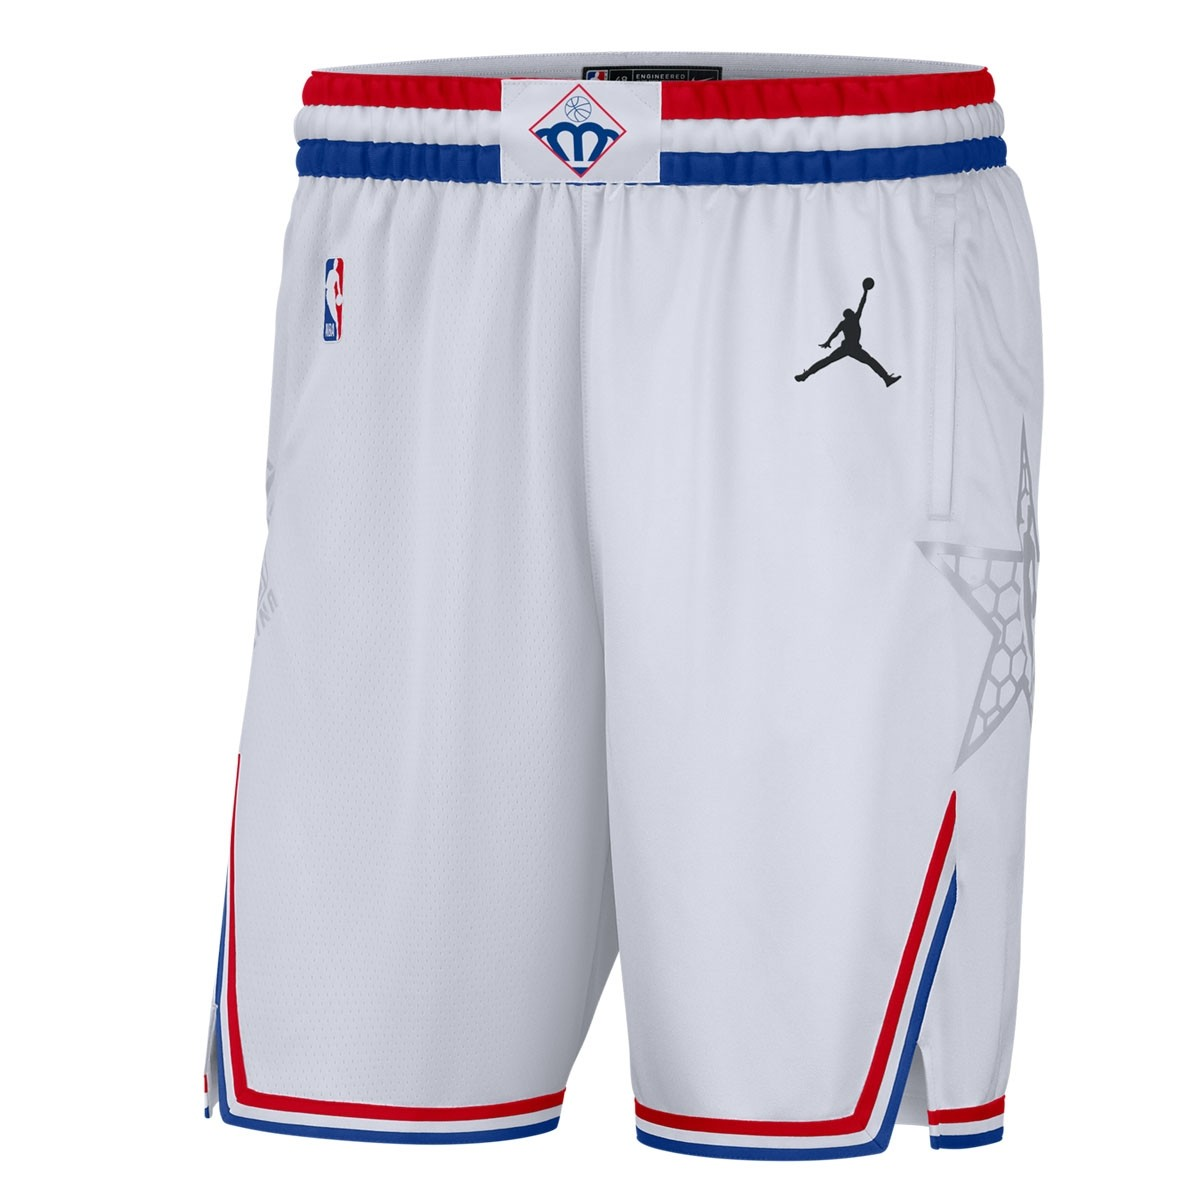 Jordan Swigman Short All-Star edition 'White'